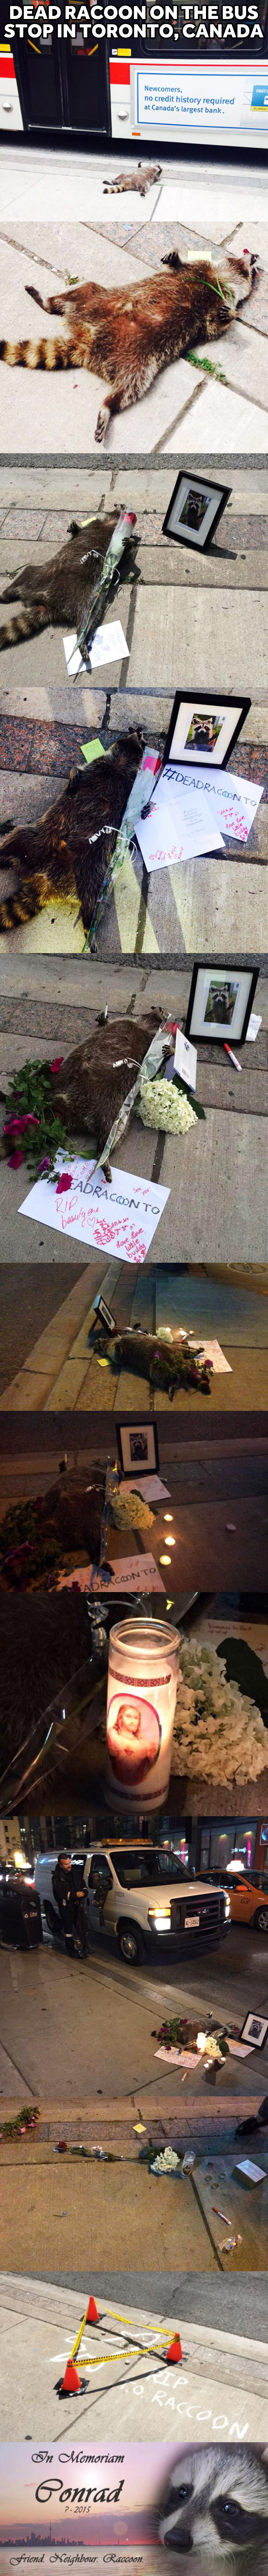 Dead racoon on the bus stop in Toronto, Canada story trolling